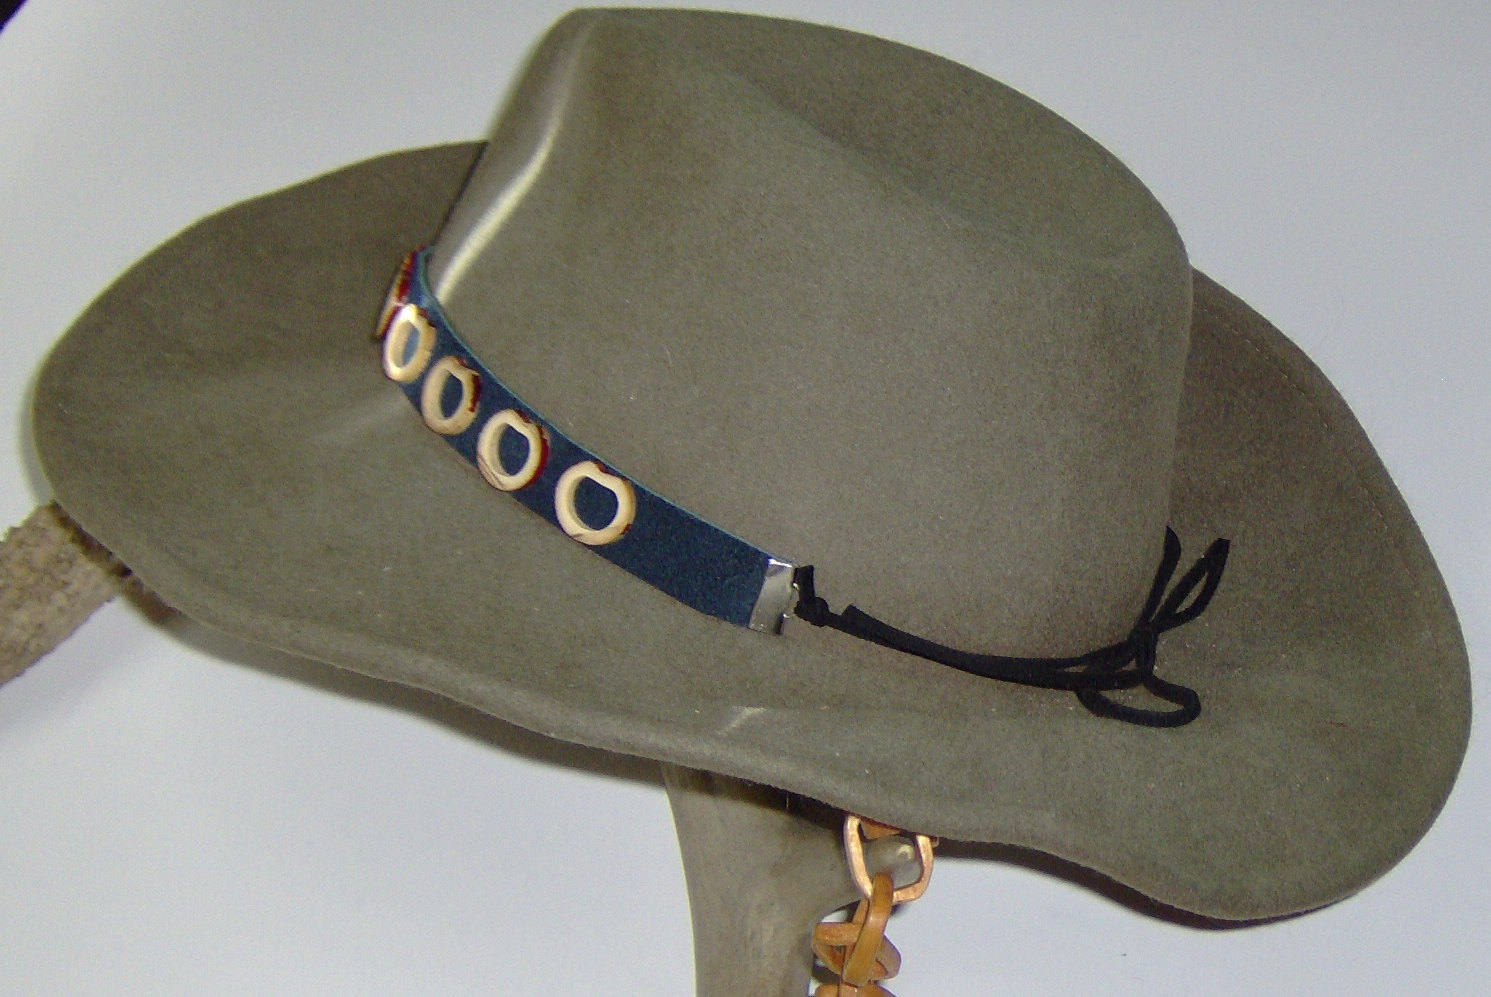 American Made! Bamboo & Leather Hat-Band, Genuine Suede Leather with Bamboo Garn